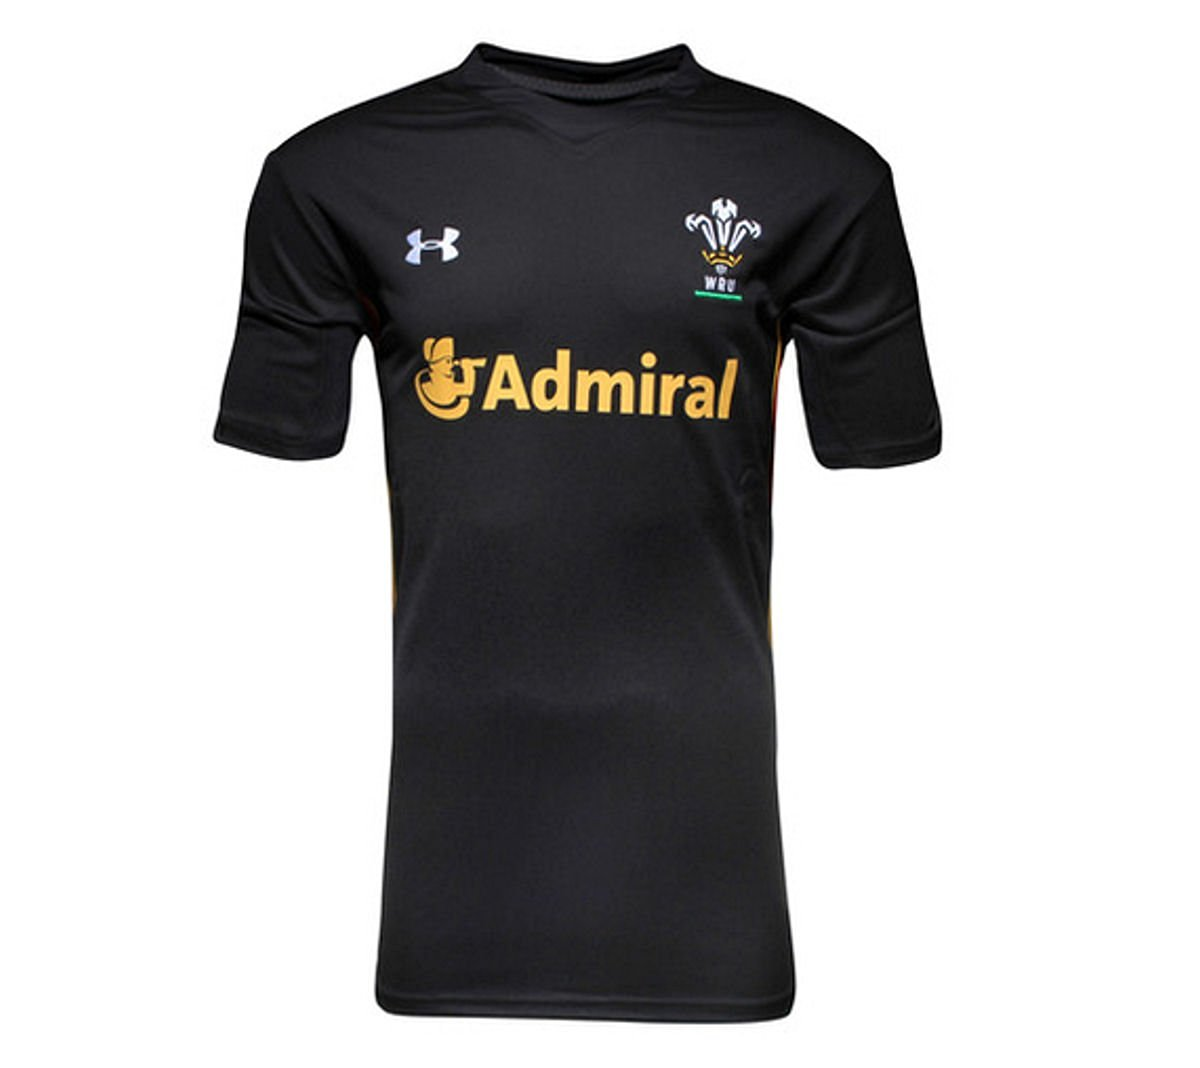 e948fef35a47 Get Quotations · 2015-2016 Wales Rugby WRU Supporters Training Shirt (Black)